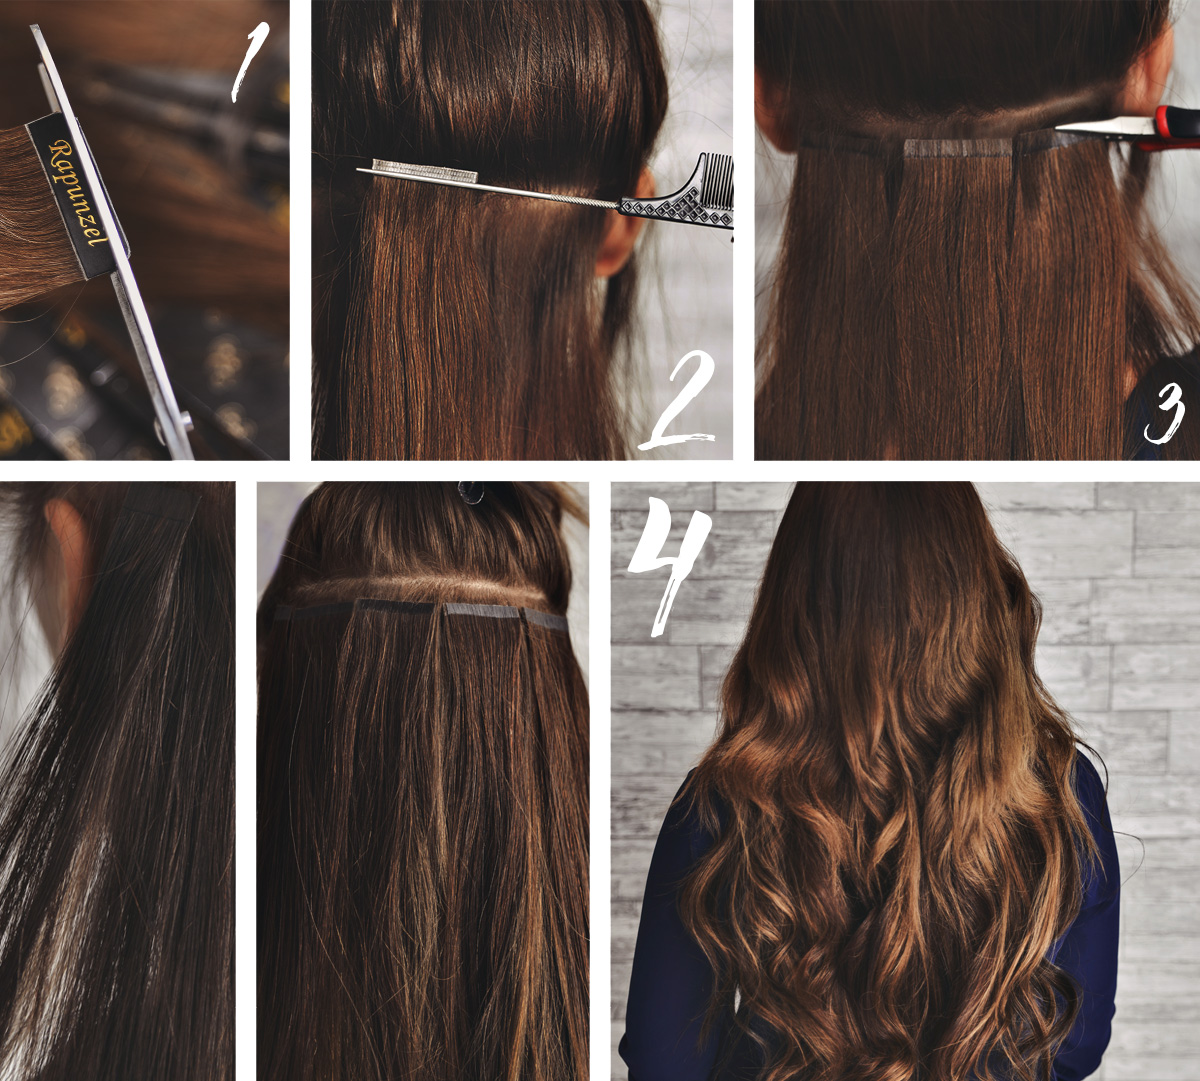 How to: Tape hair extensions